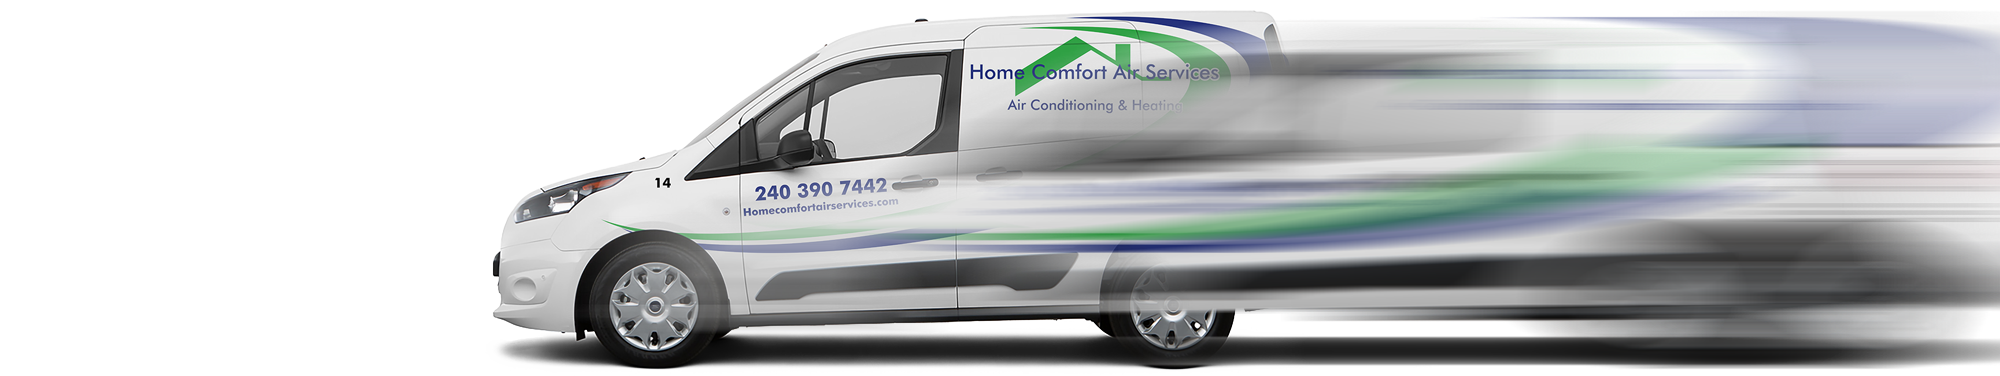 Home Comfort Air Services, your go to for the best Ductless Mini Split repair in Silver Spring  MD.